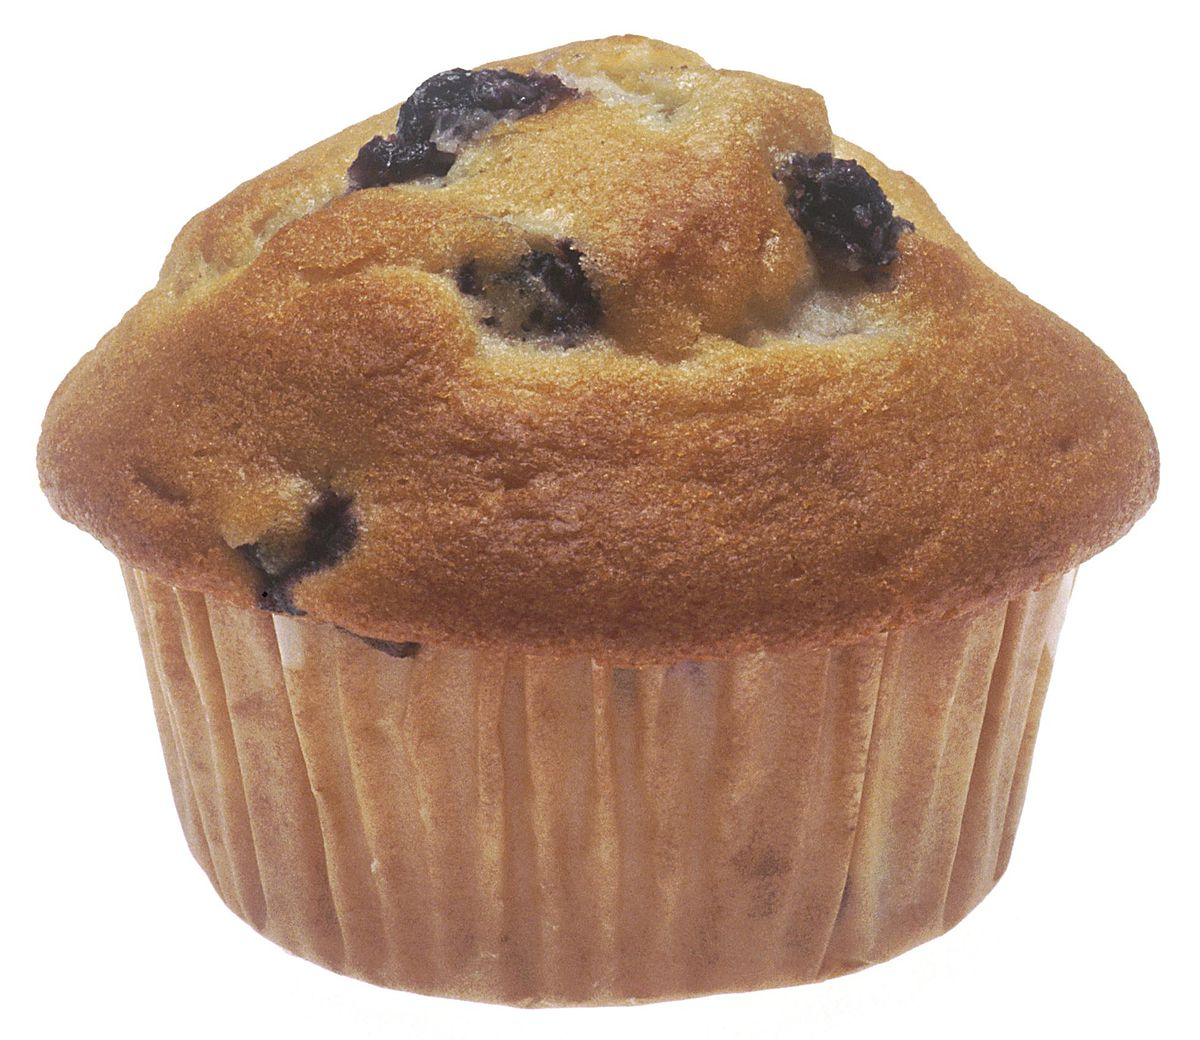 Large Muffin Image